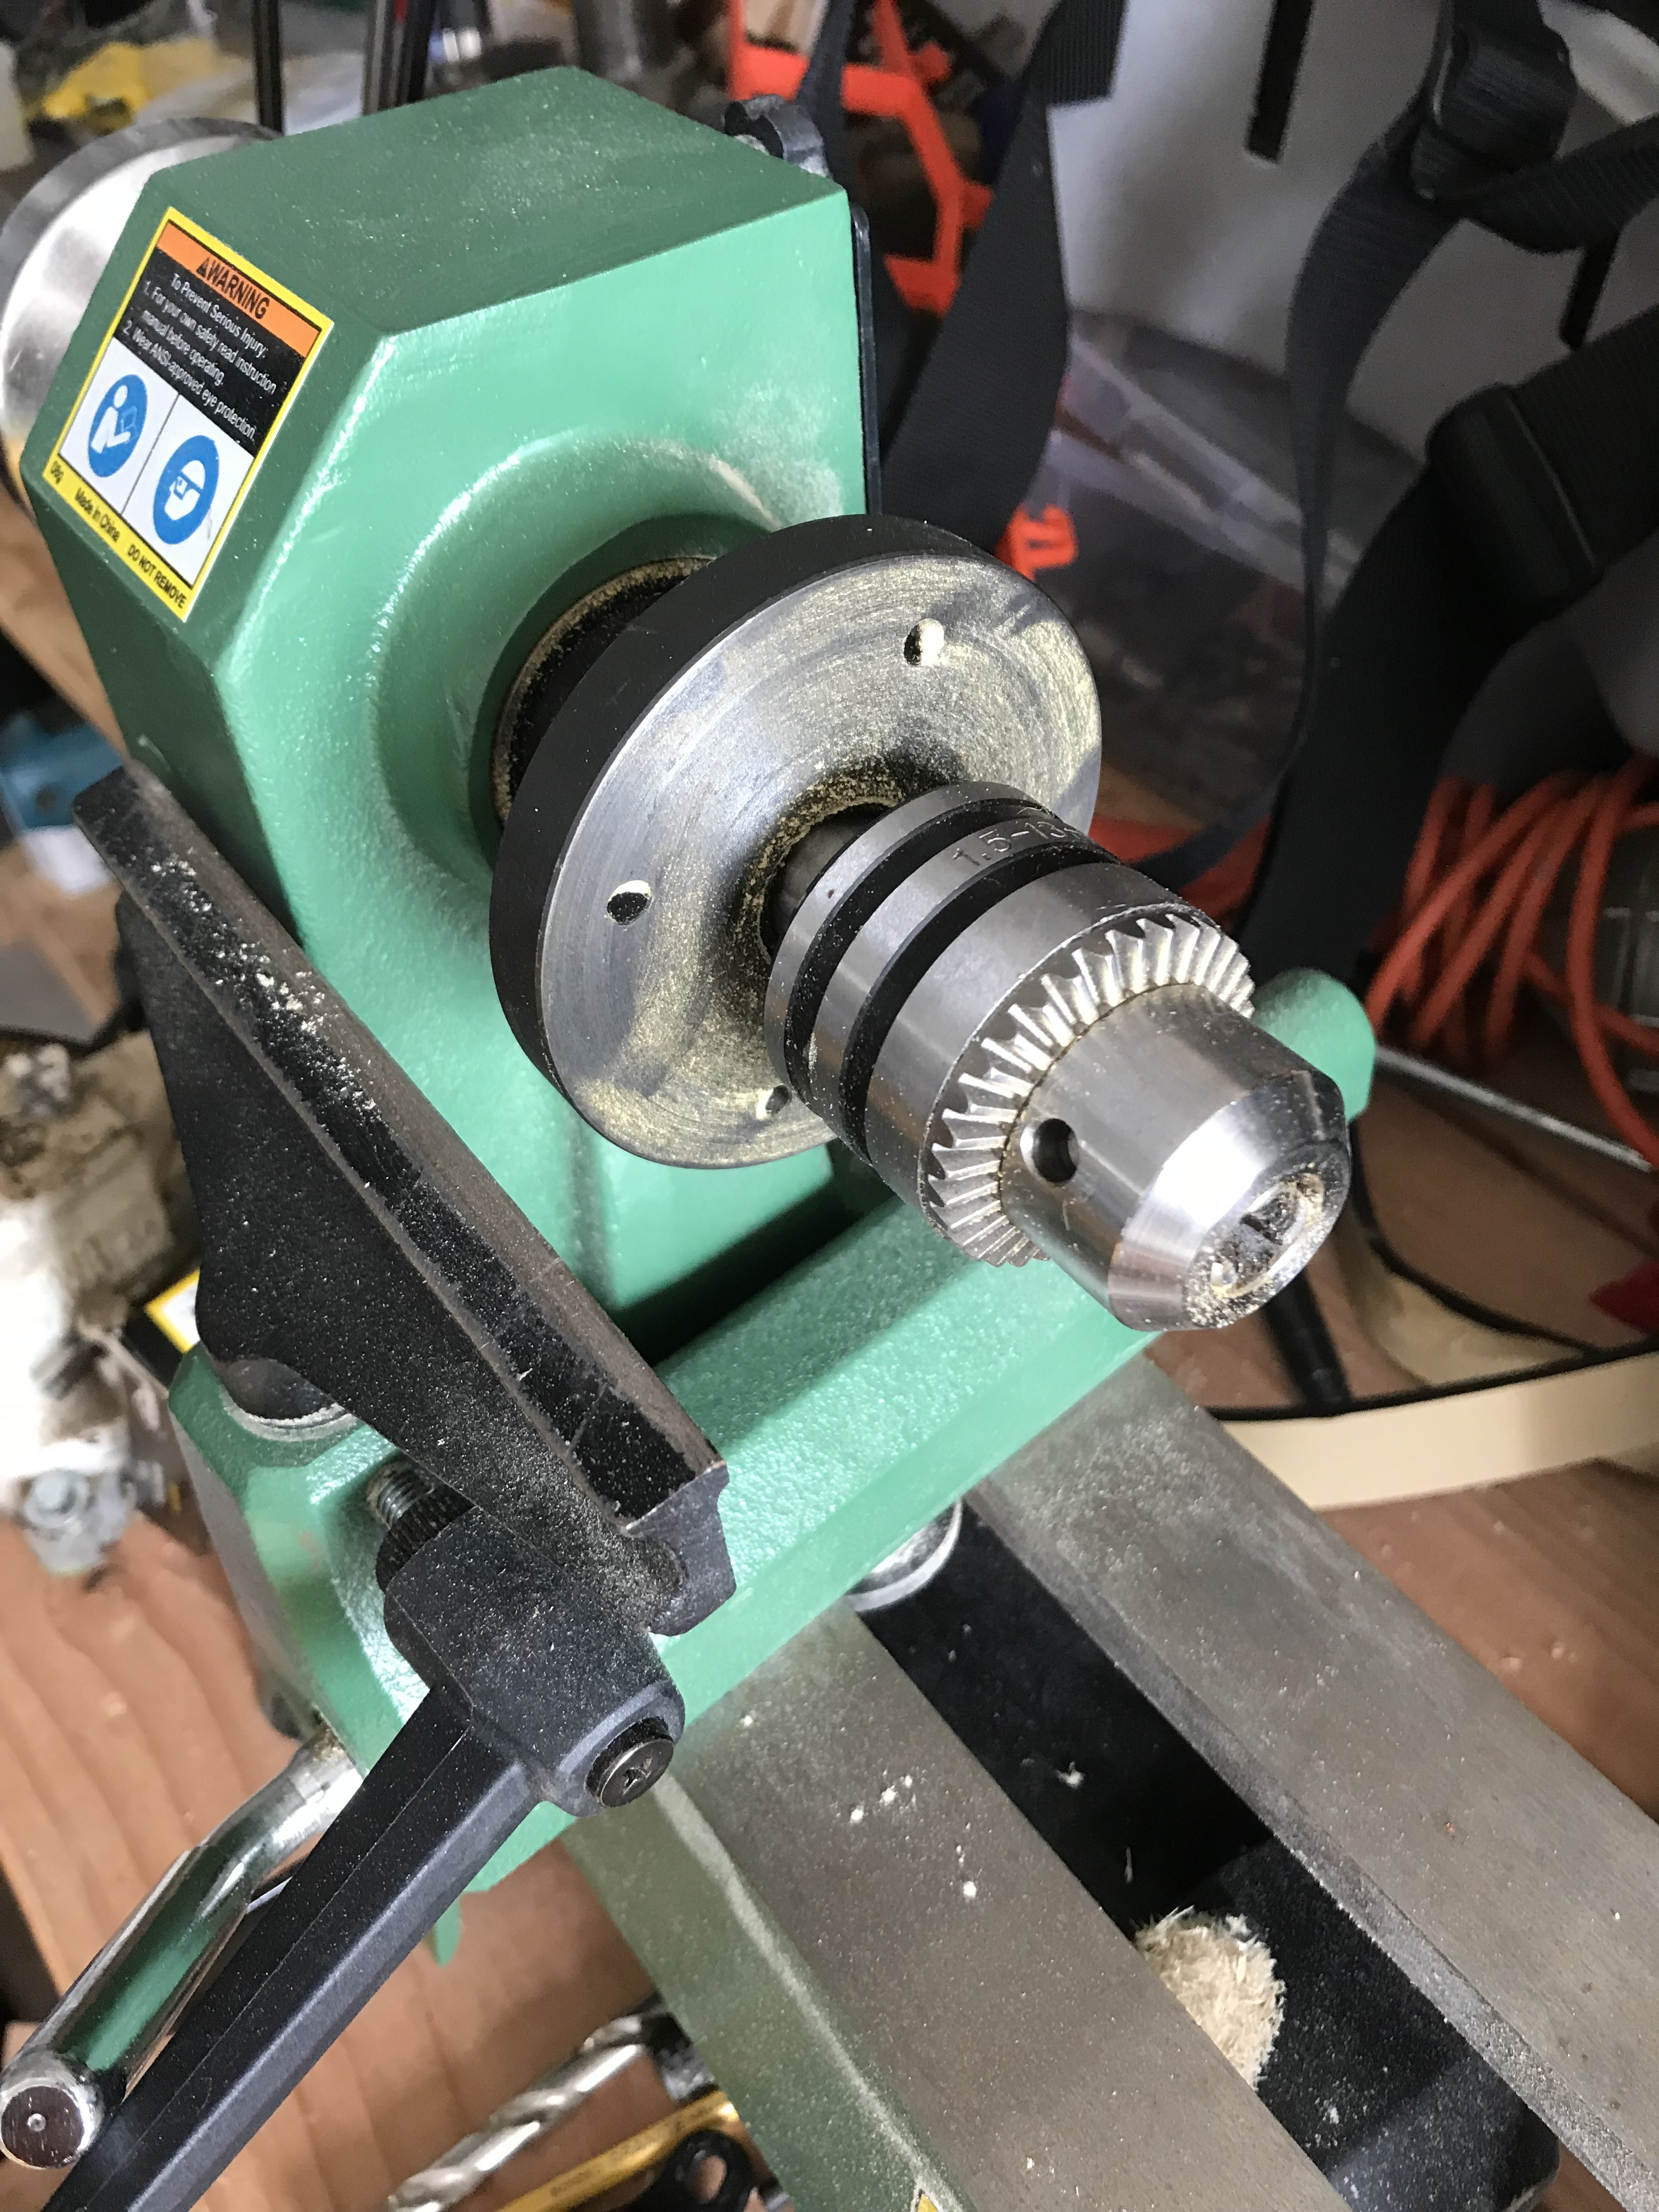 Harbor Freight lathe - General Buy/Sell/Trade Forum - SurfTalk